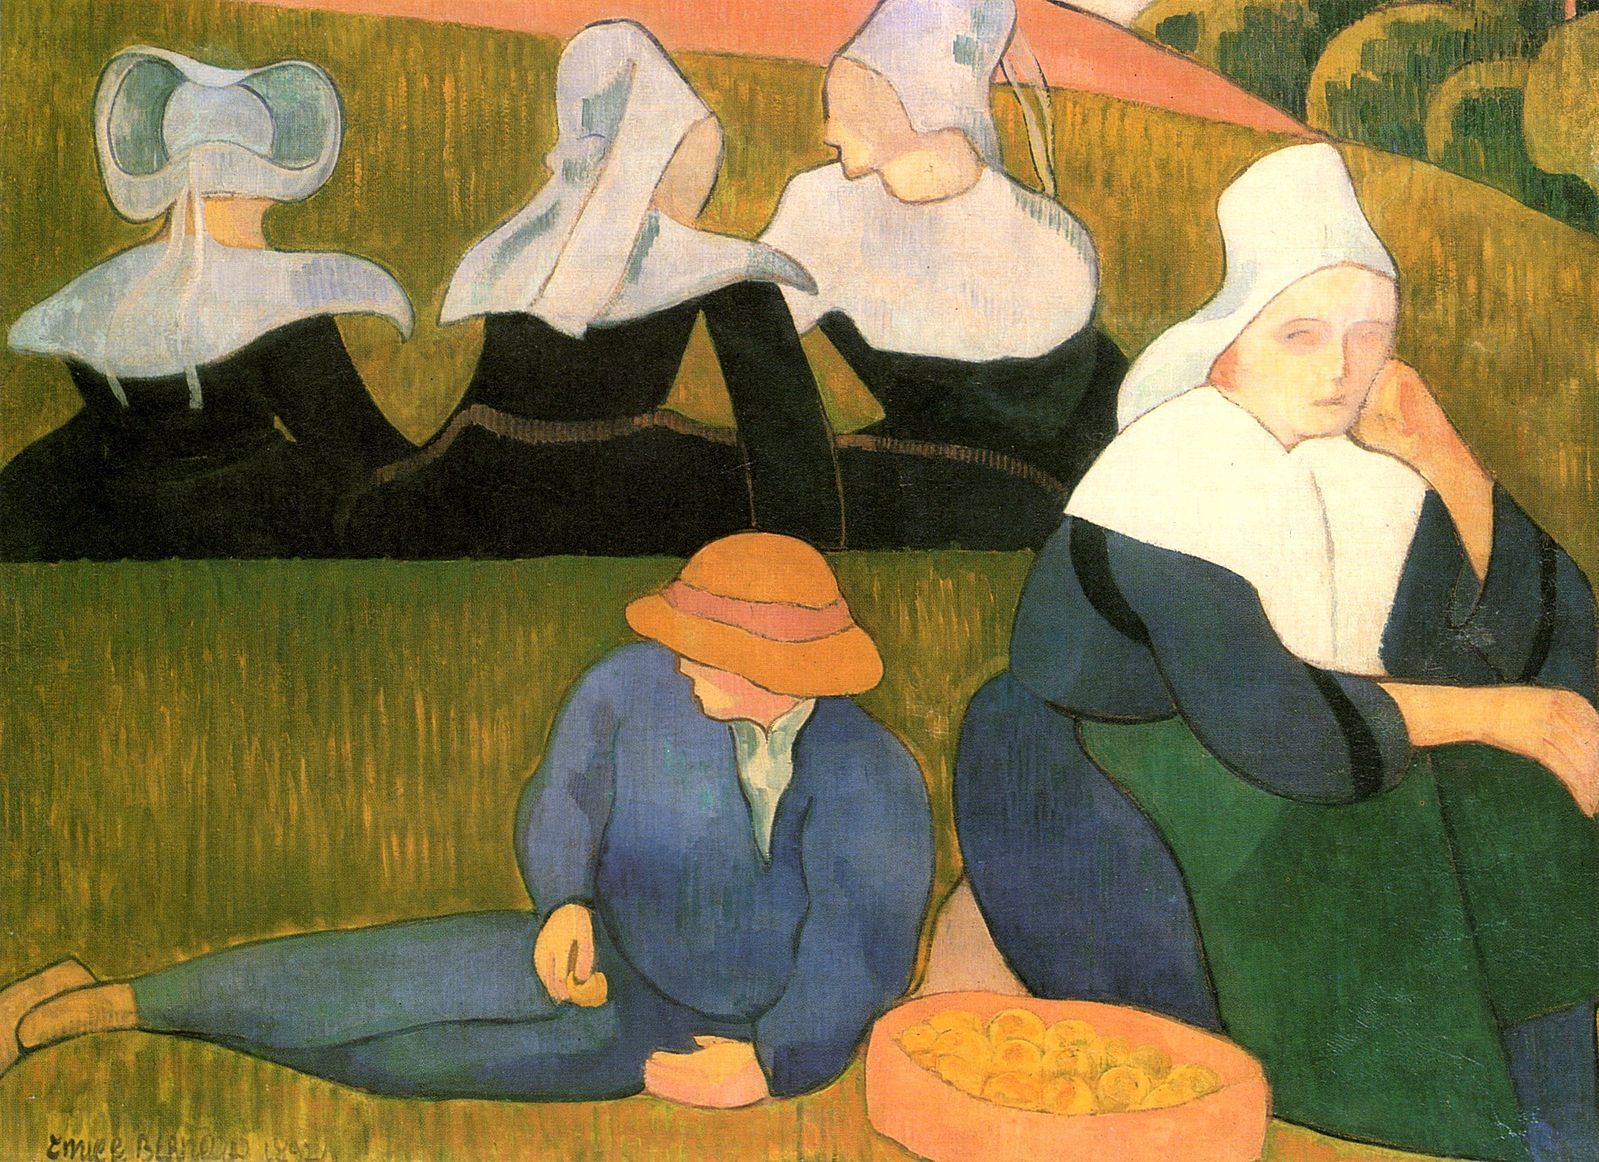 Emile Bernard, Breton Peasants in a Meadow, 1892. Josefowitz Collection 84x114cm